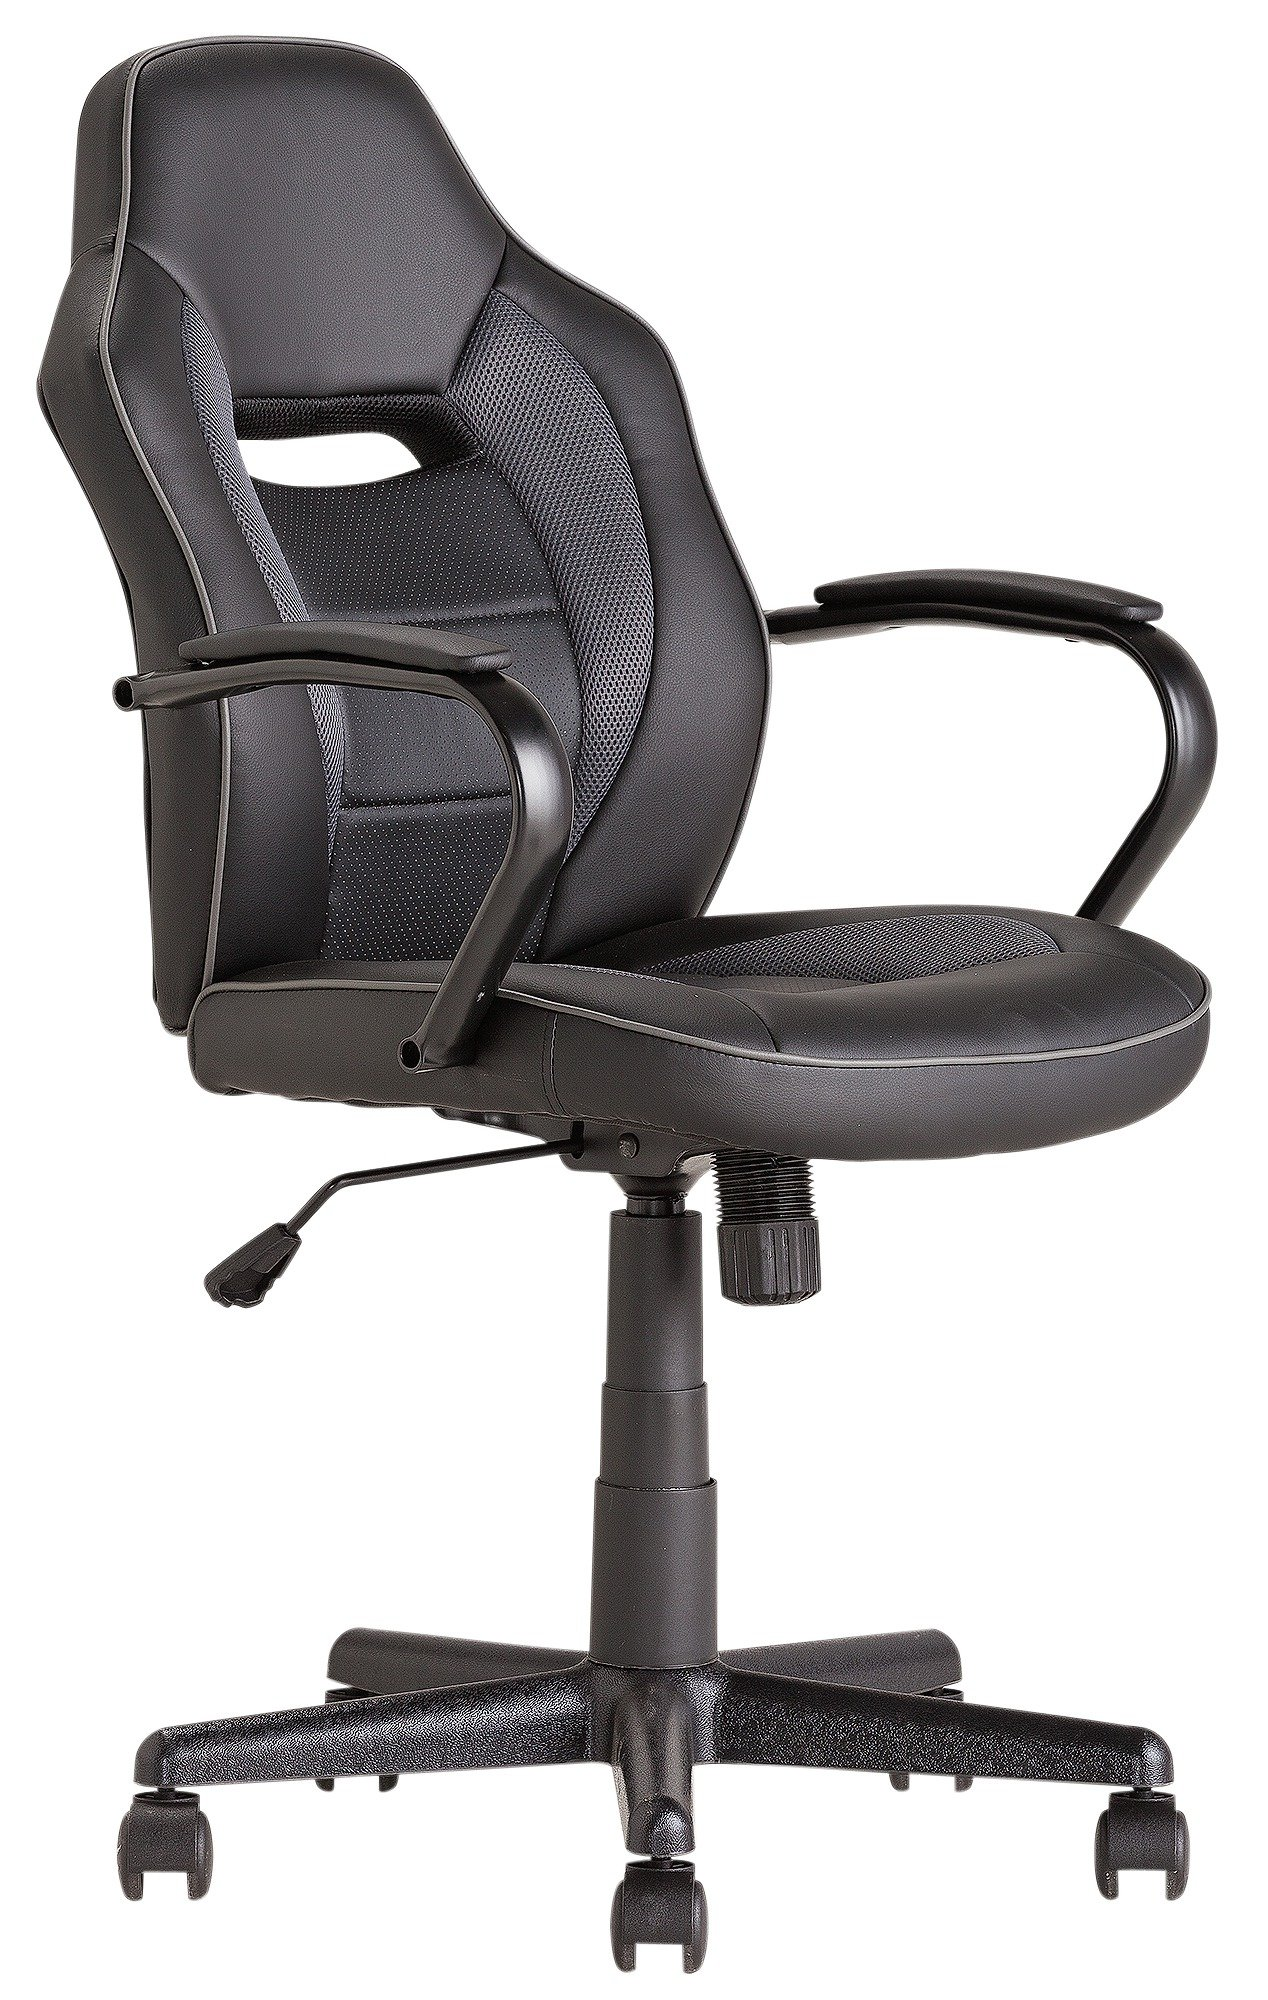 Mid Back Office Gaming Chair Review